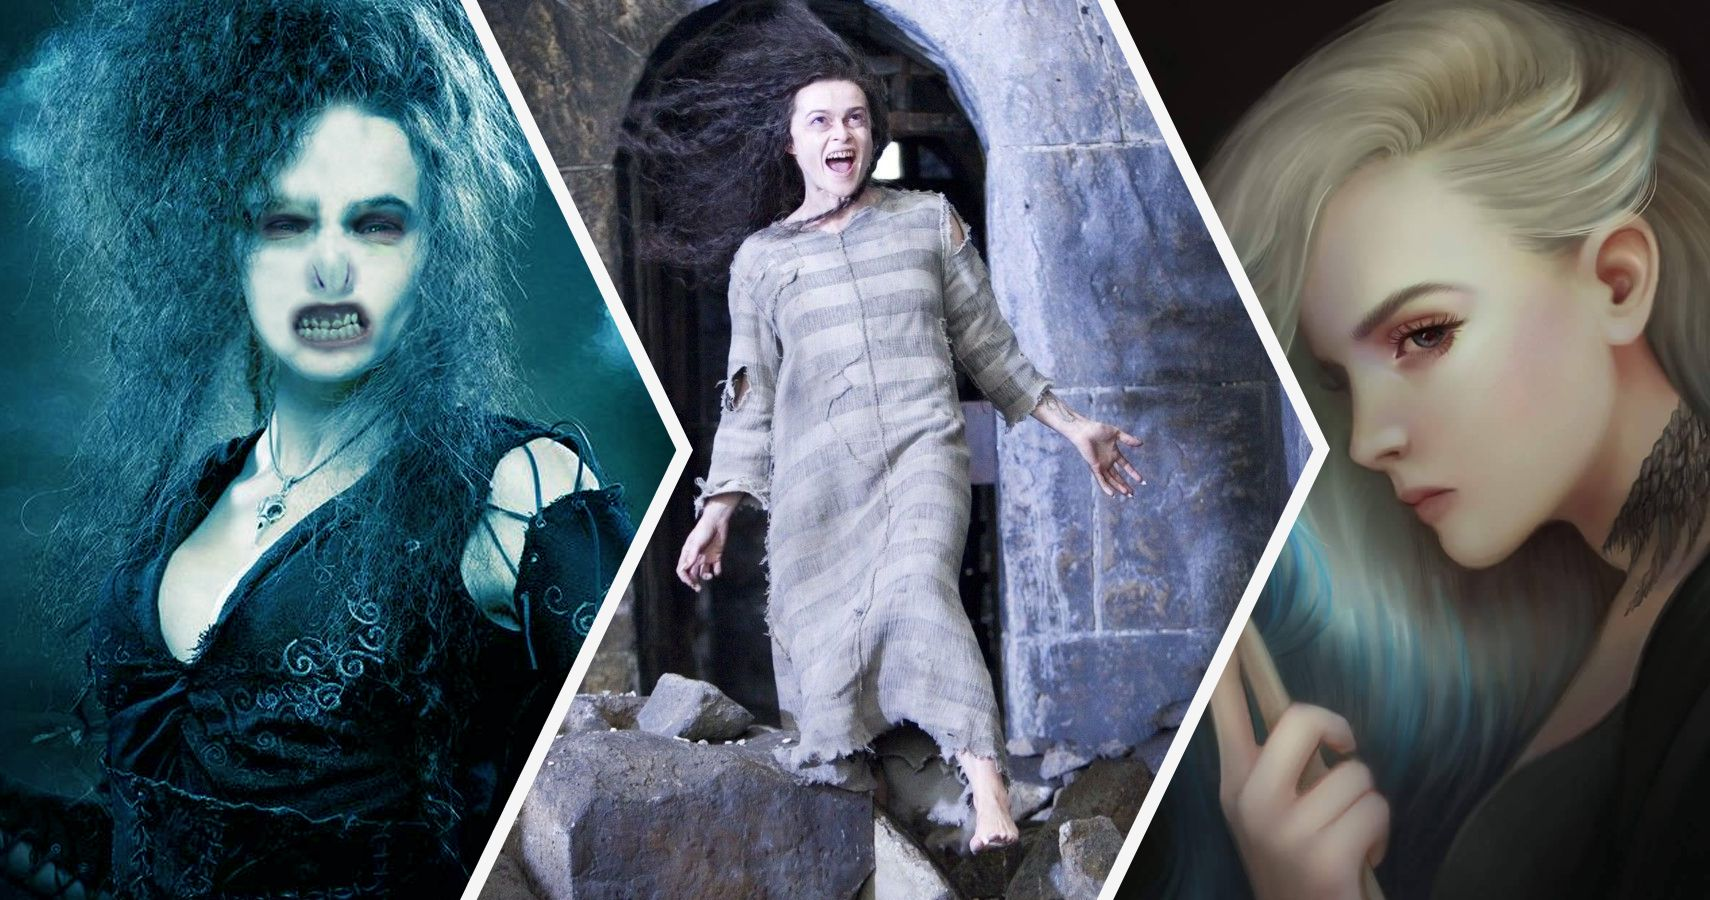 Harry Potter: 20 Strangest Things About Bellatrix Lestrange's Body